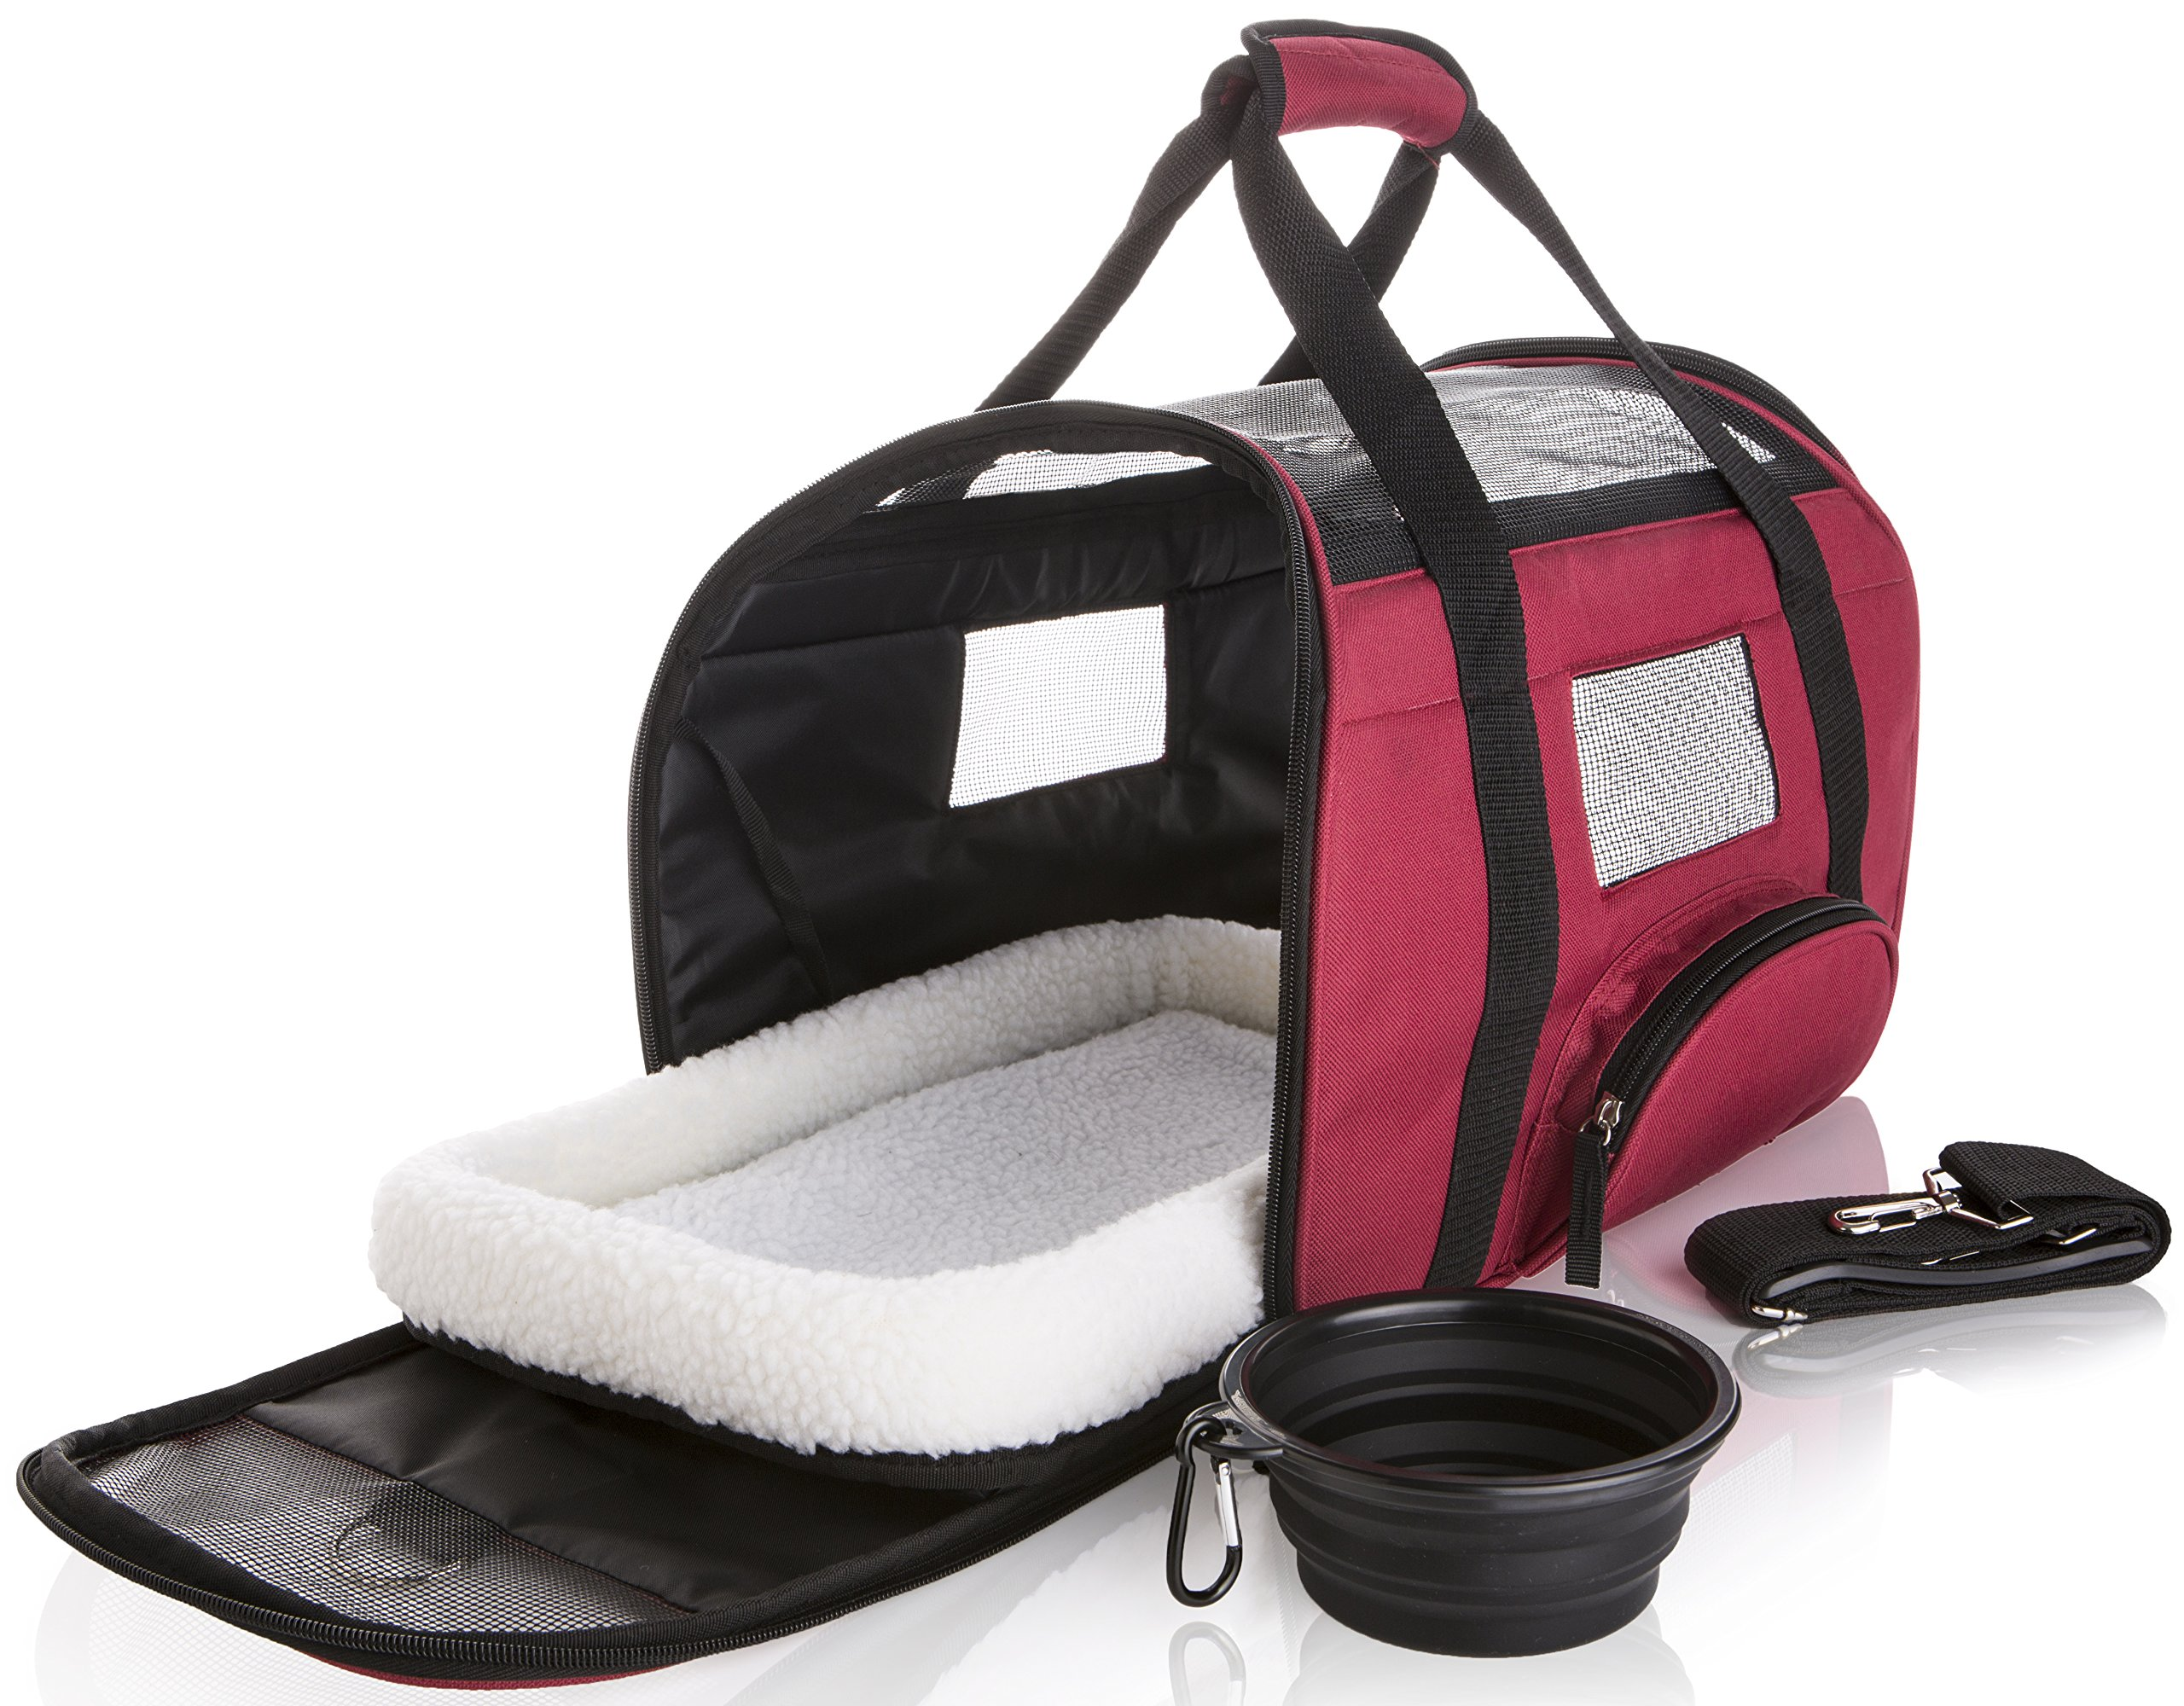 SunShack Soft Sided Travel Pet Carrier - Onboard Airline Approved Under Seat Bag Cats Dogs | Cushioned Fleece Pad | Collapsible Food/Water Bowl Included | Bicycle Compatible | Small, Maroon